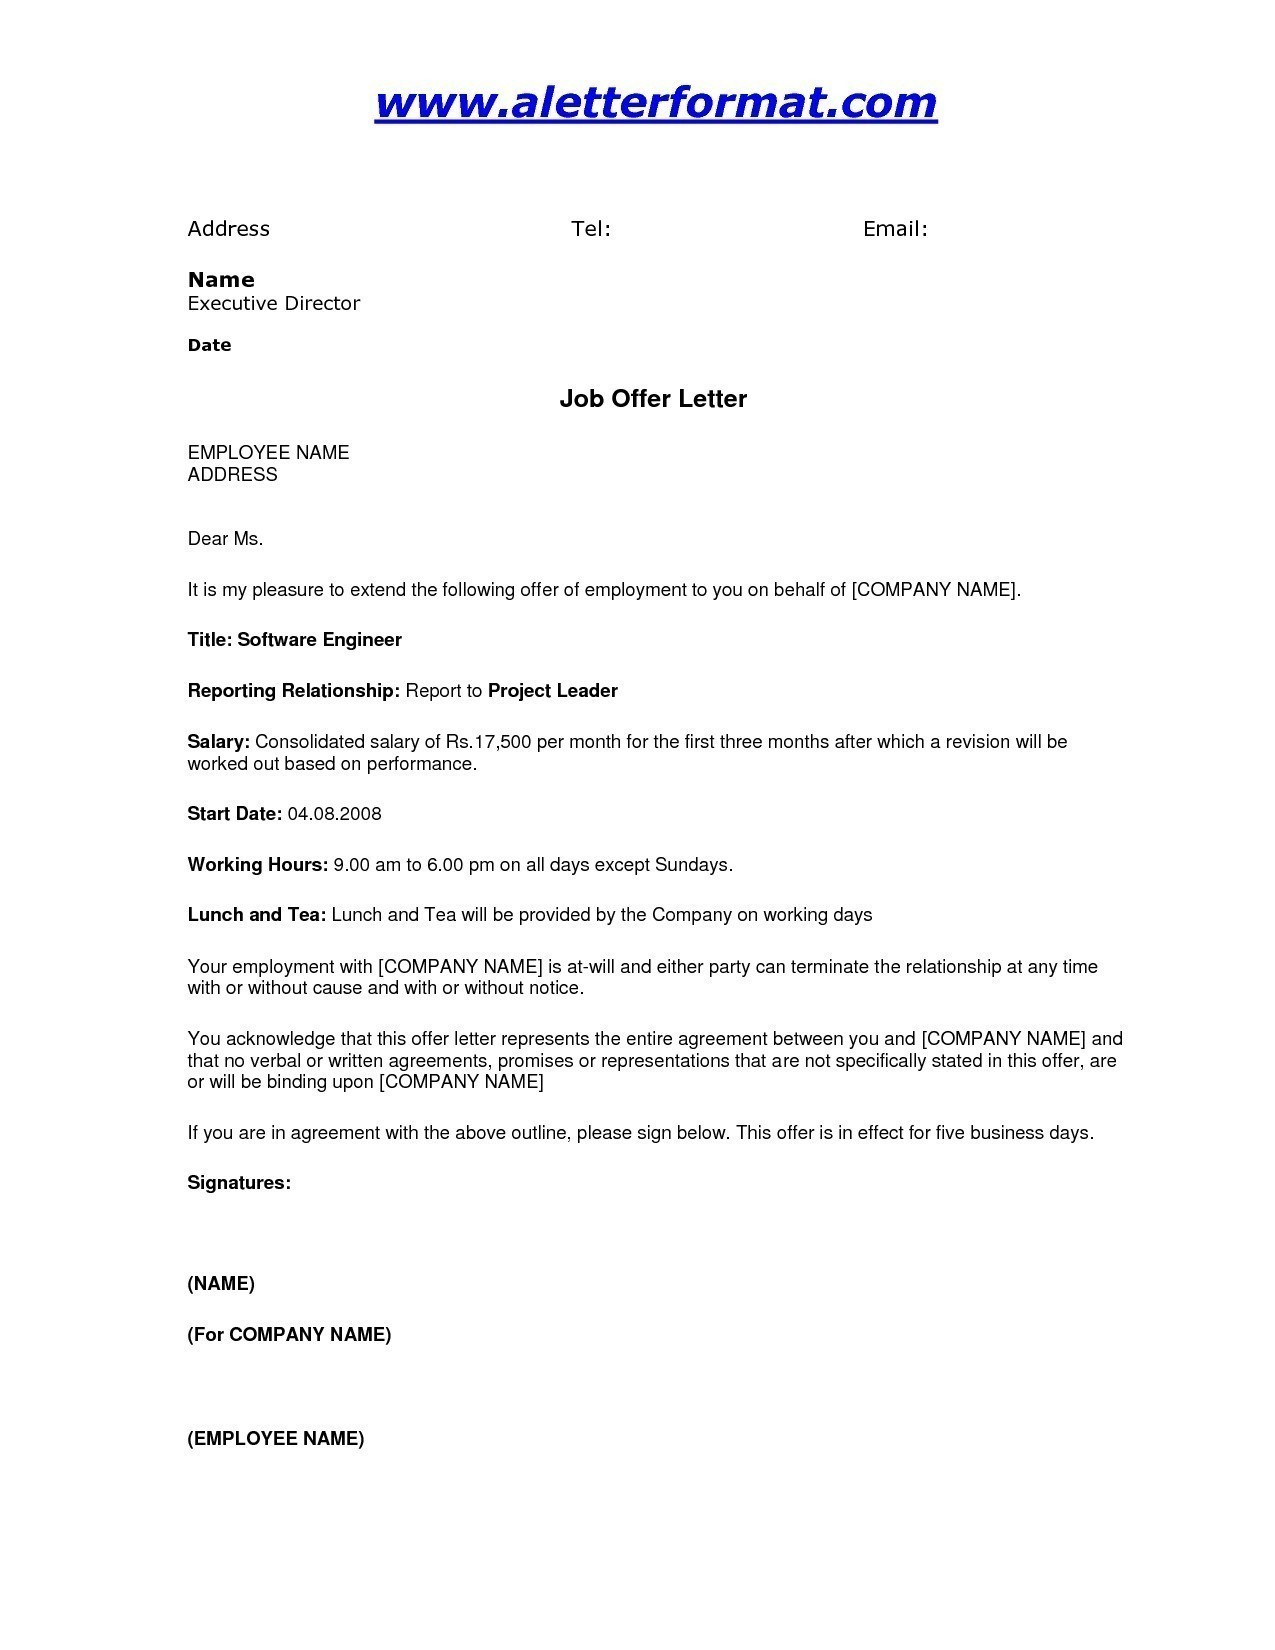 job offer letter template doc fer letter format doc india copy formal letter format sample